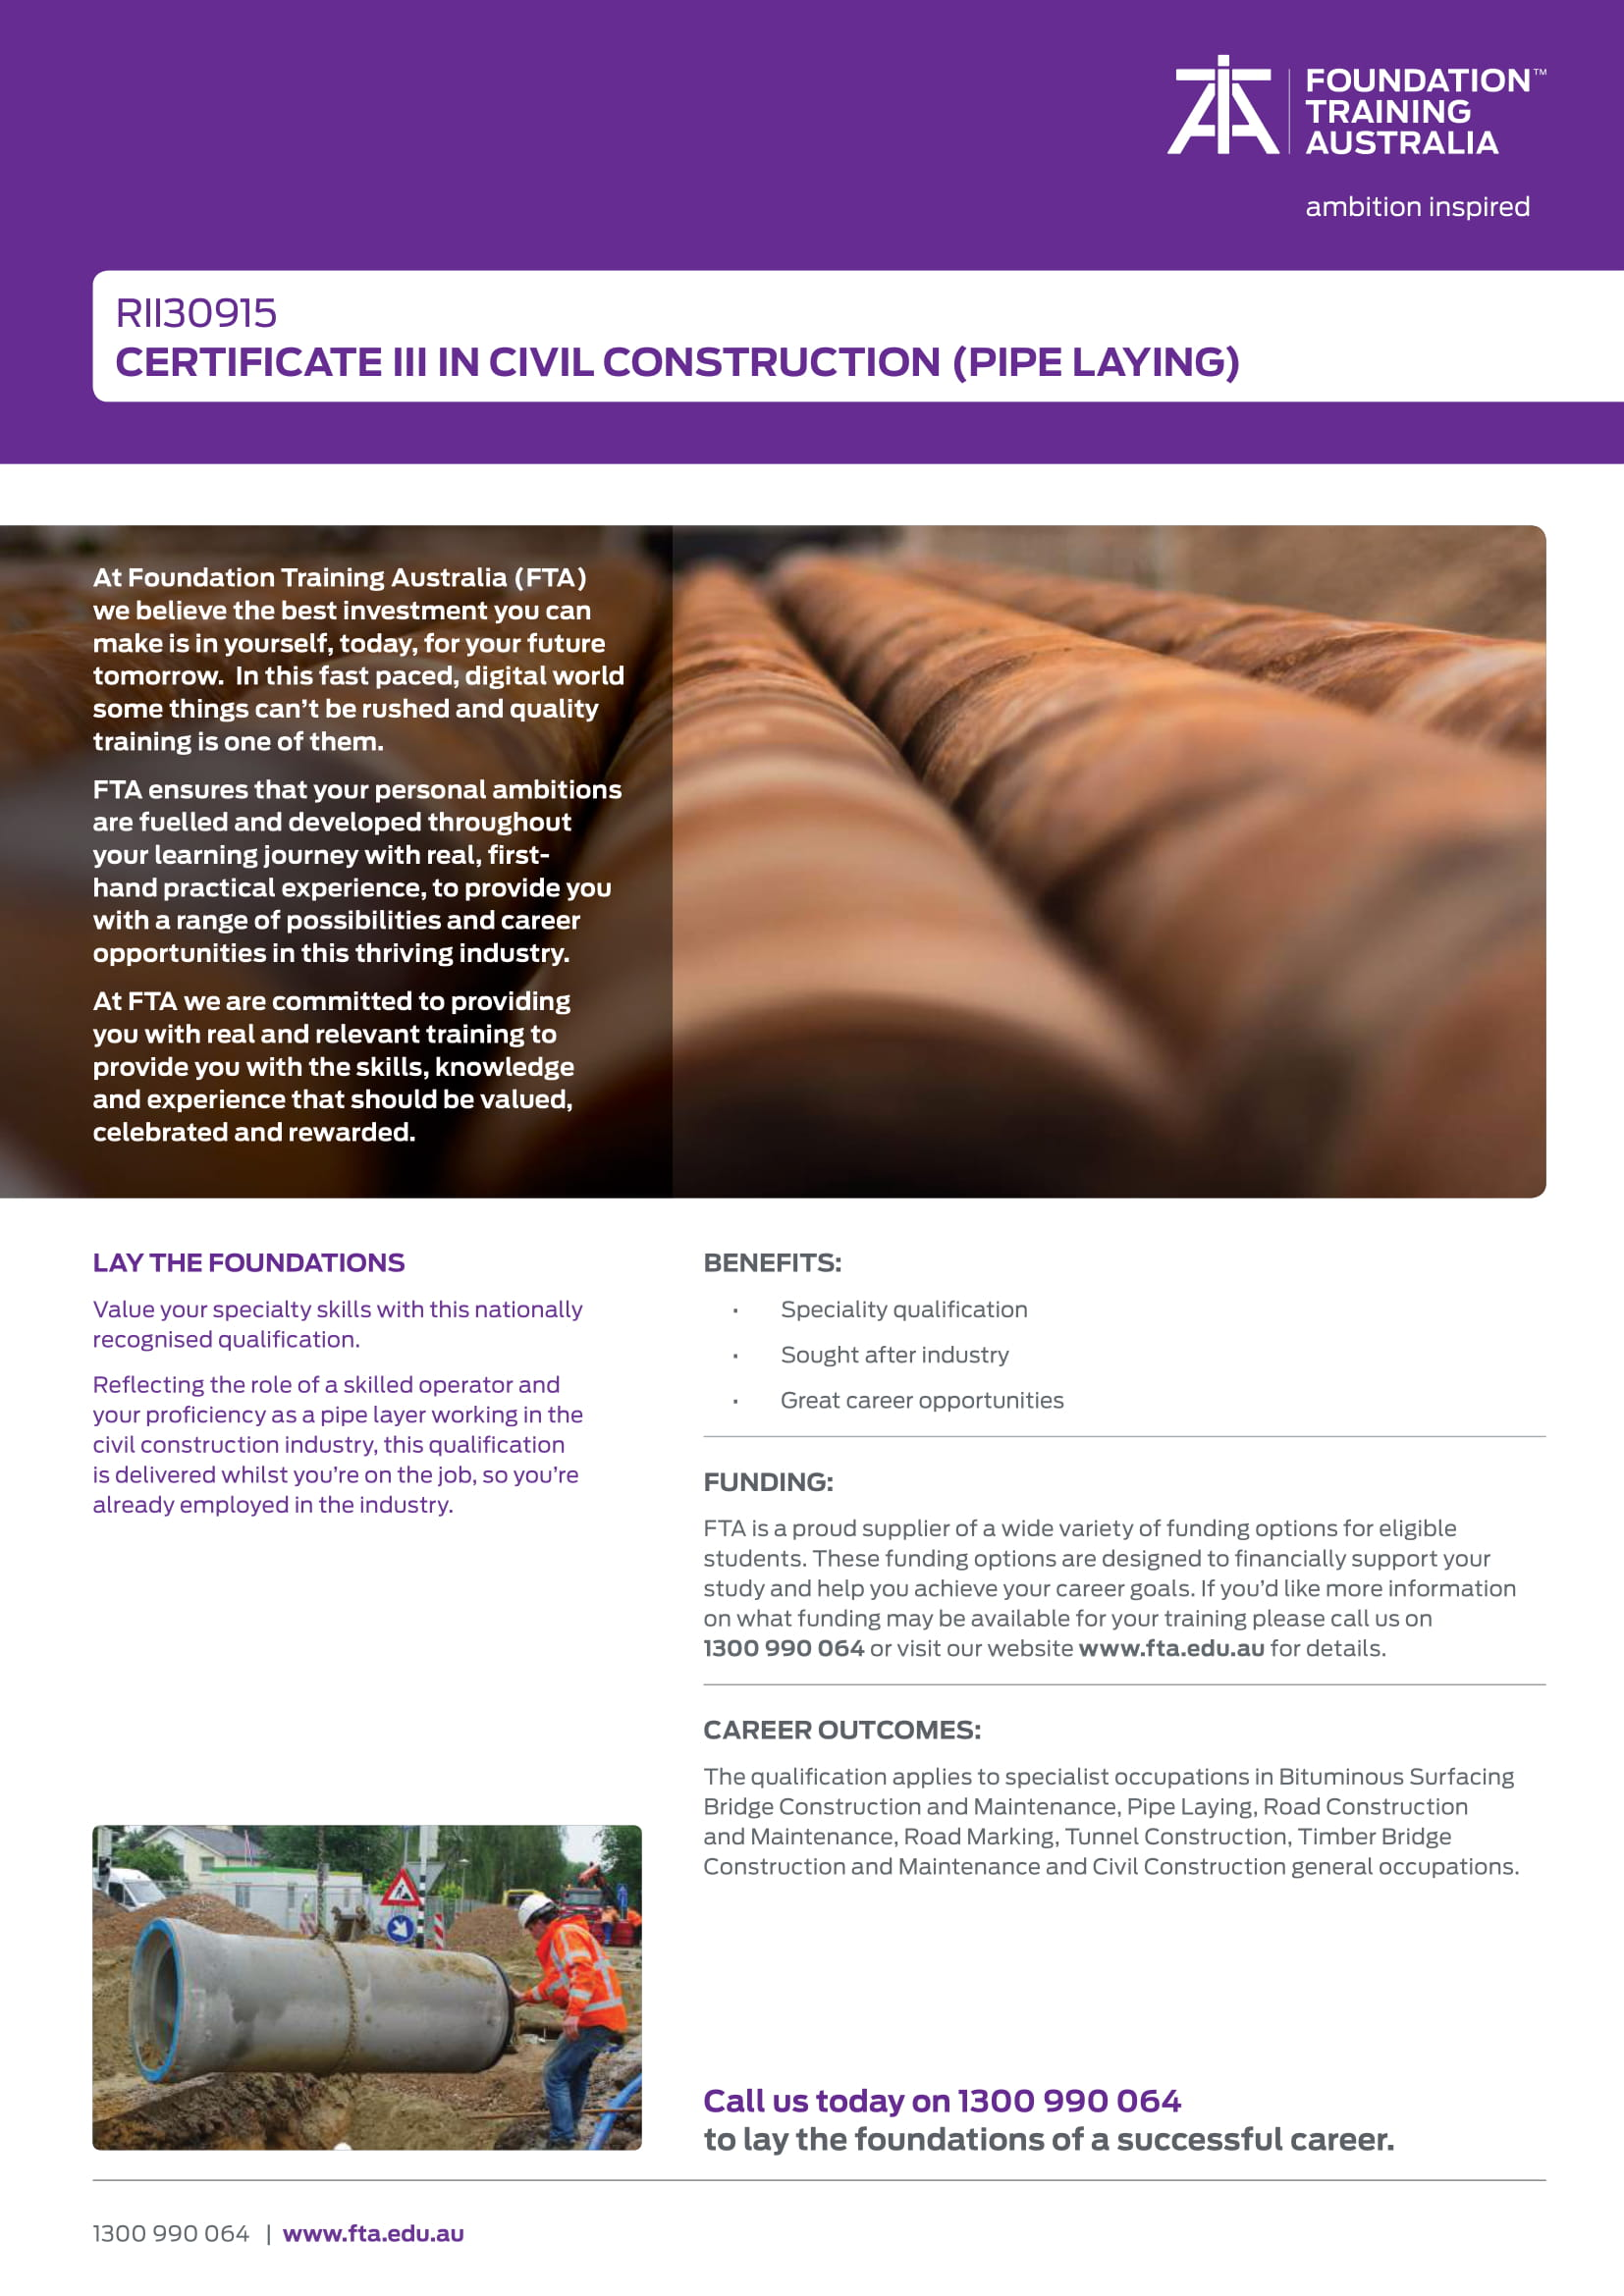 https://www.fta.edu.au/wp-content/uploads/2020/06/TP1.MK_.019-Certificate-III-in-Civil-Construction-Pipe-Laying-RII30915-V1-DIGITAL.compressed-1.jpg